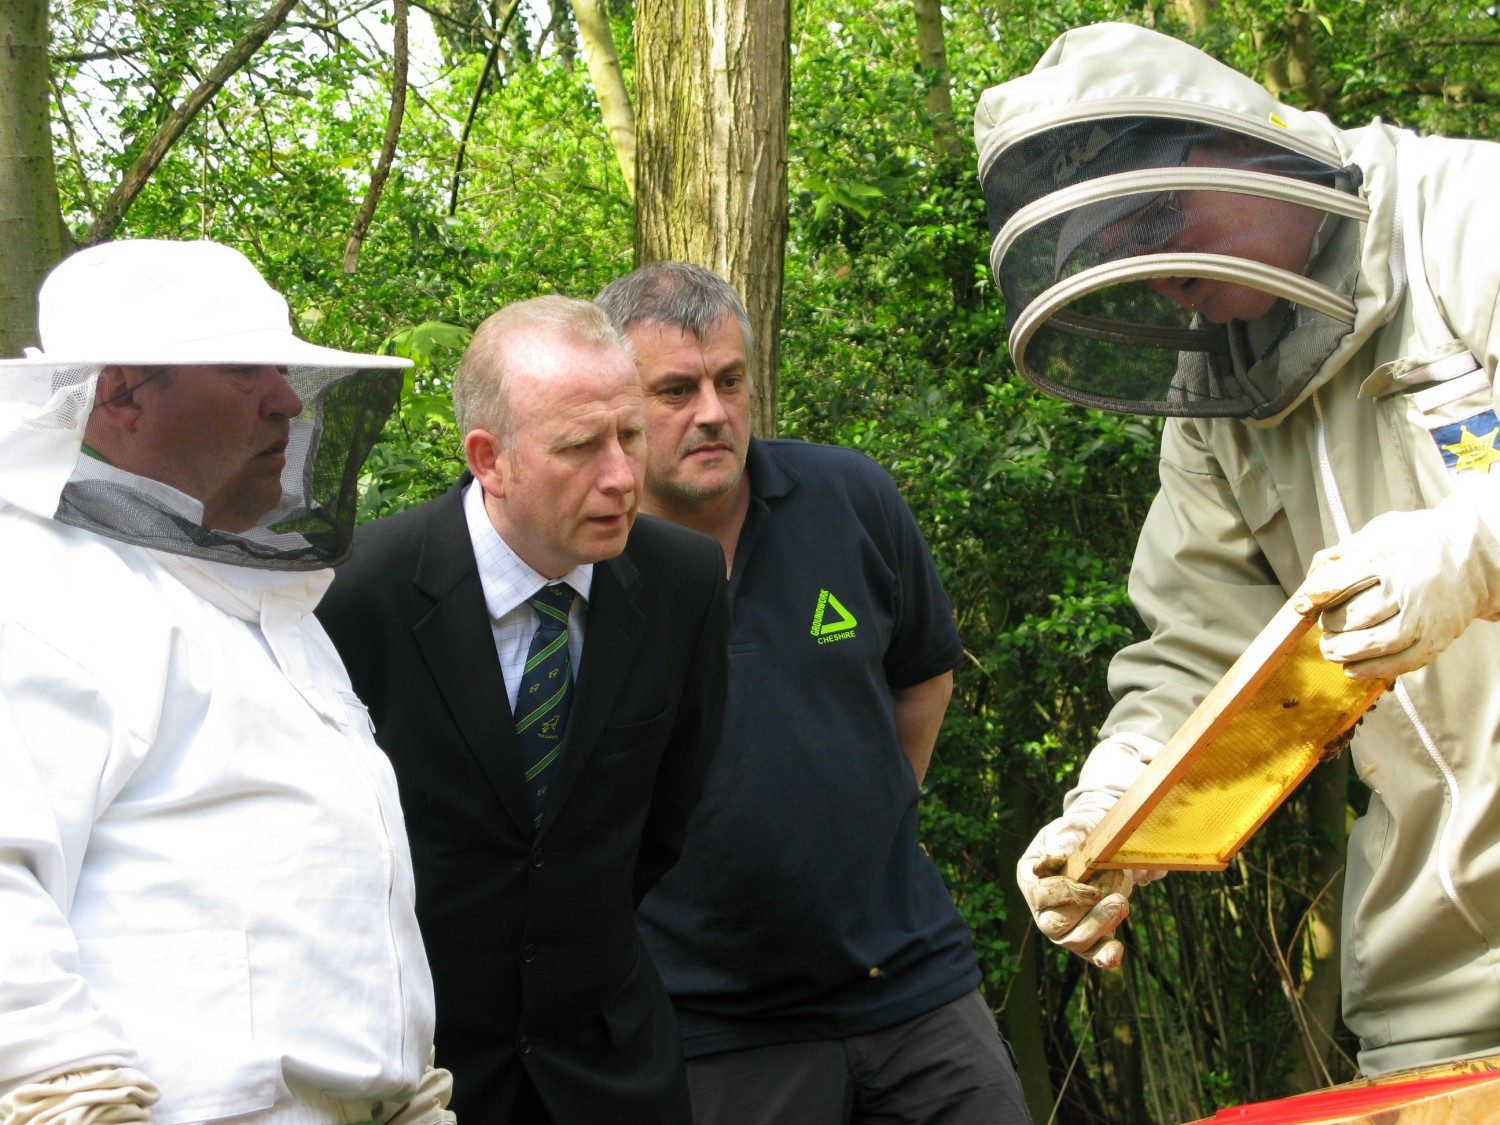 Graham Evans MP and Andy Martin, Grozone project manager, find out more about the beehives.